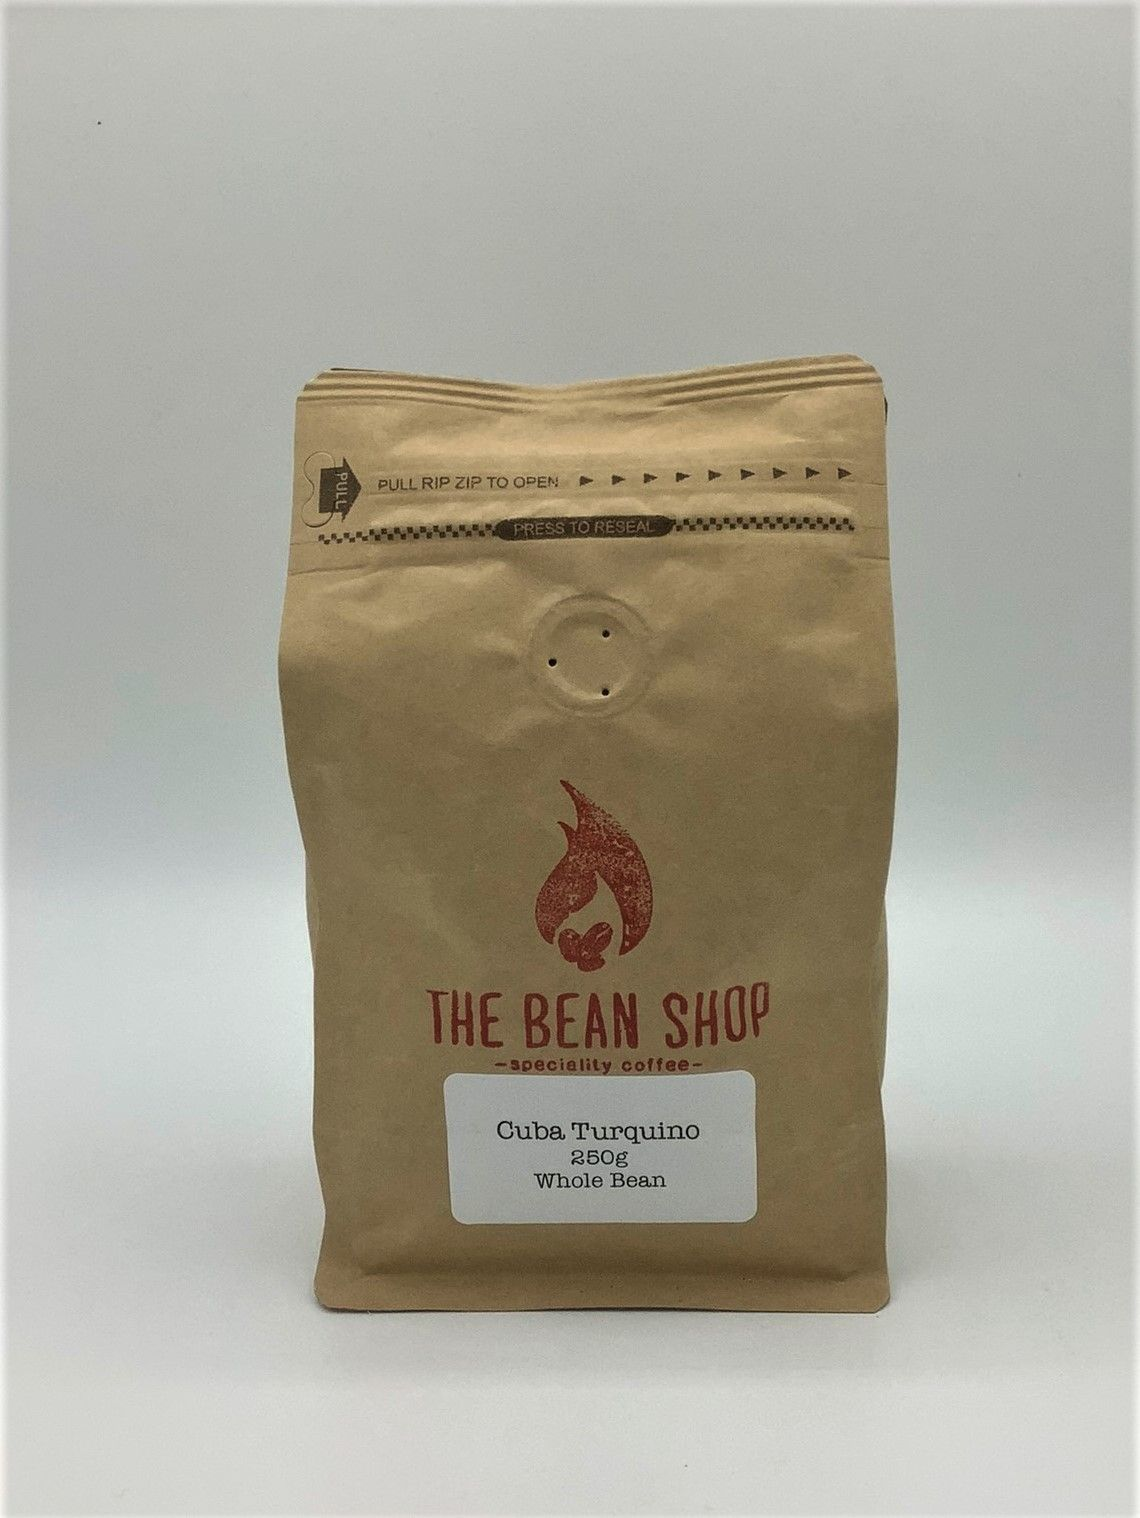 Bean Shop Cuba Turquino Coffee